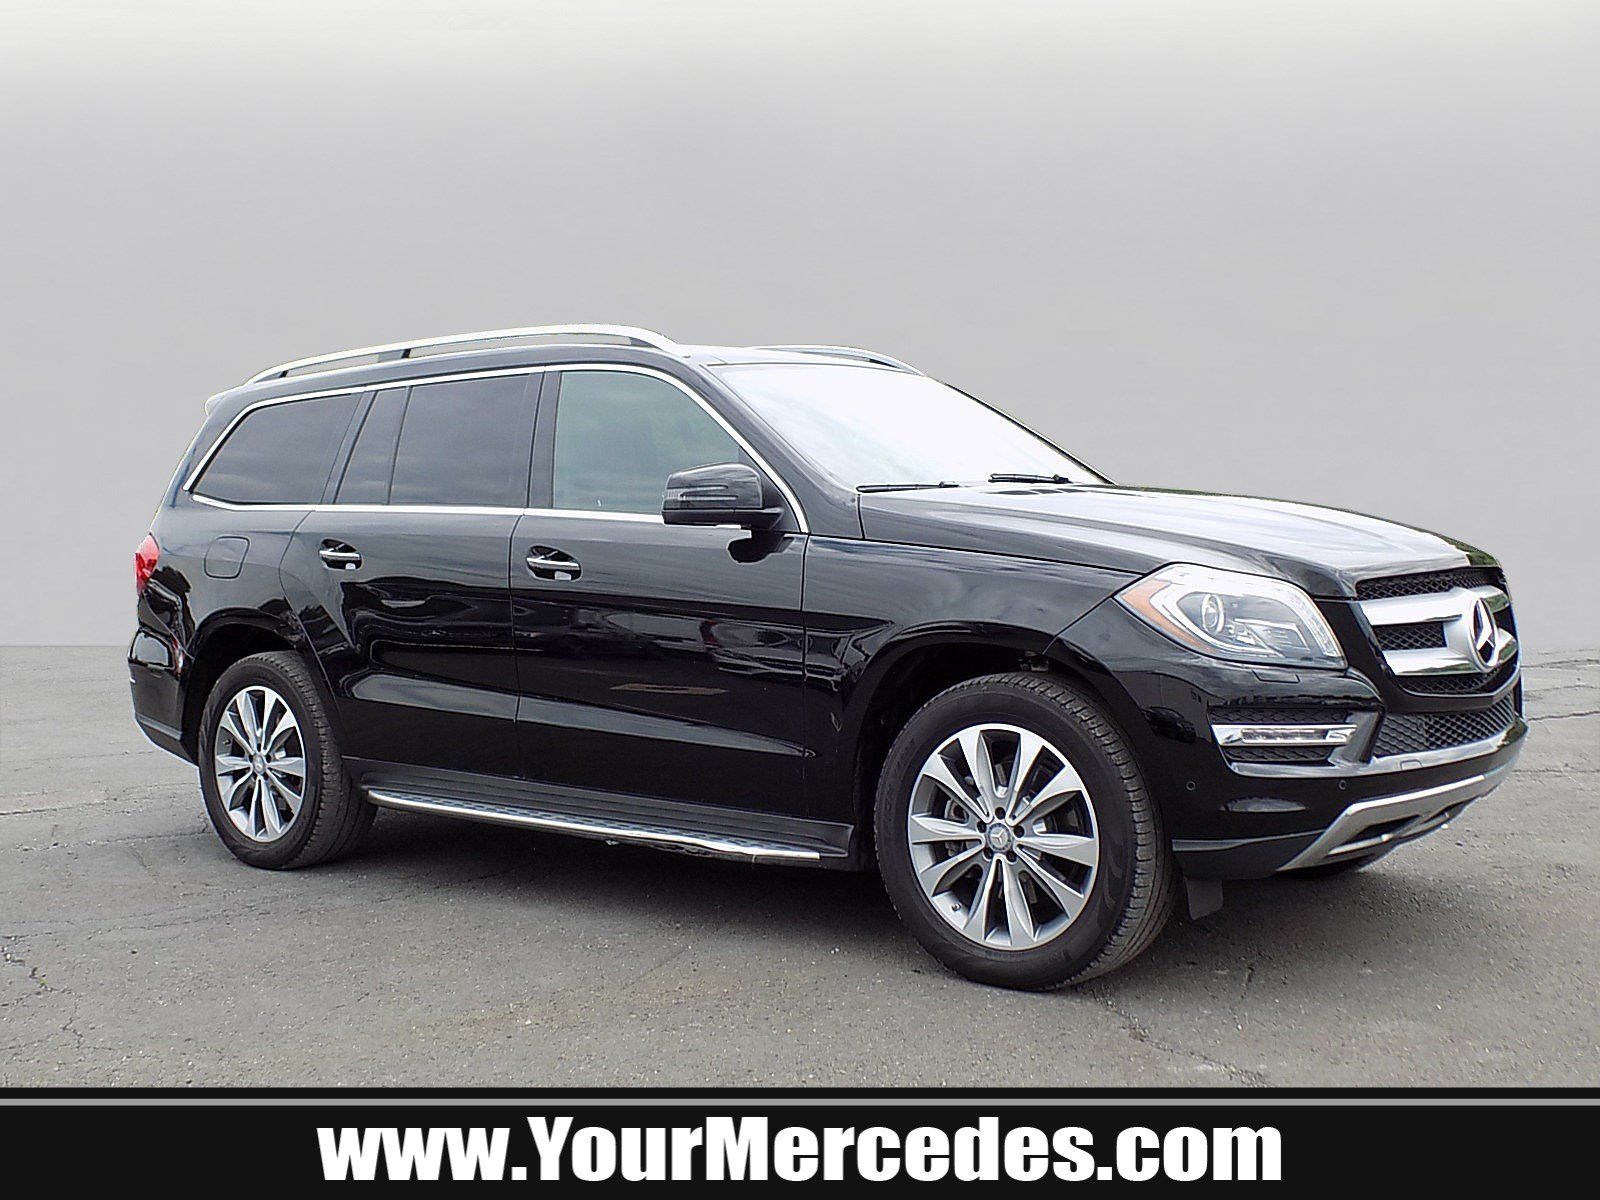 9cb8e66983e7118a5647cc52ead70f96 Interesting Info About 2013 Mercedes Gl450 for Sale